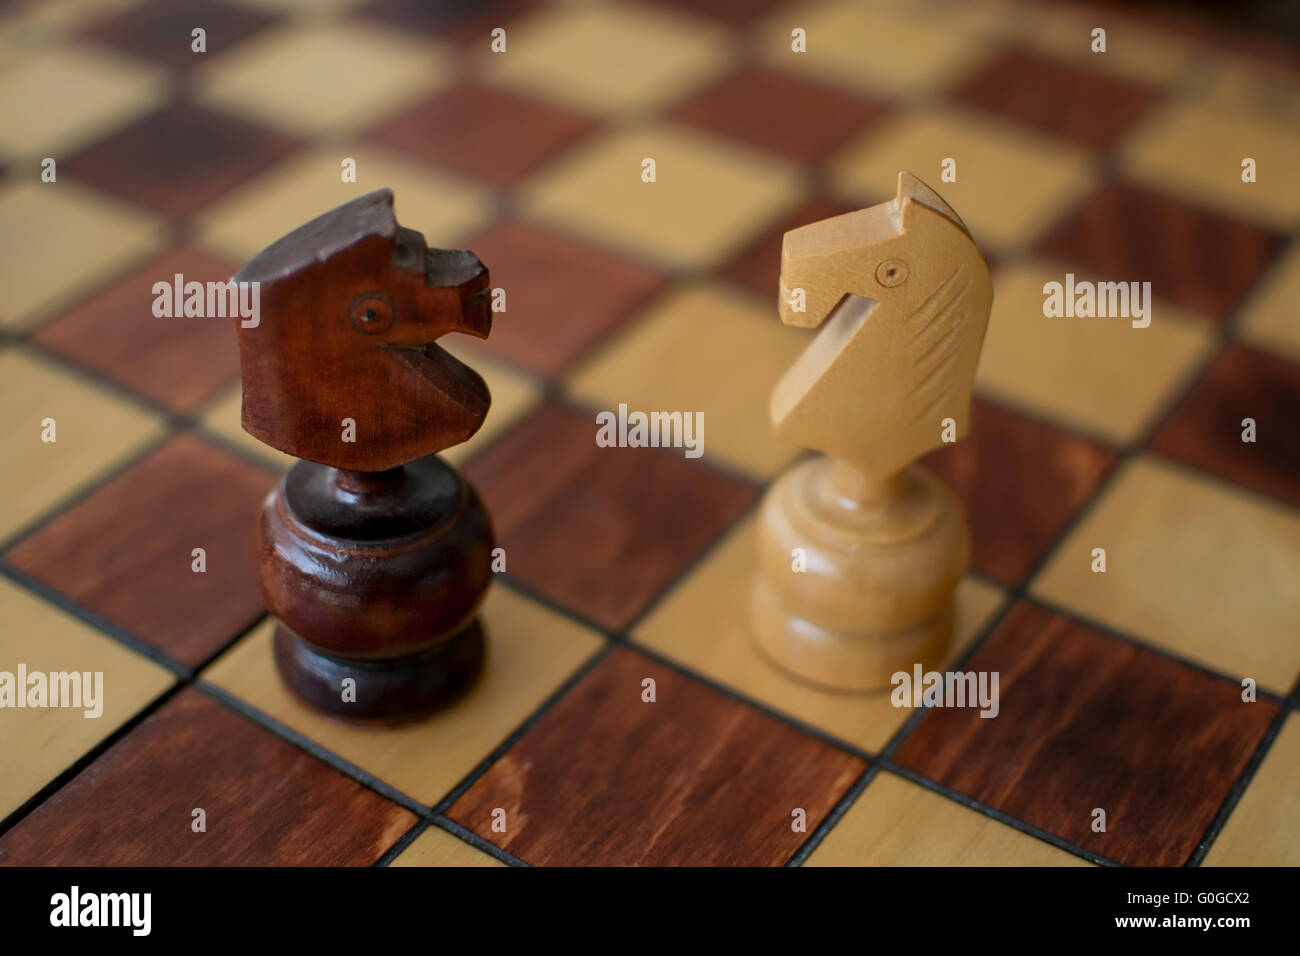 Two Knights on a wooden chessboard Stock Photo